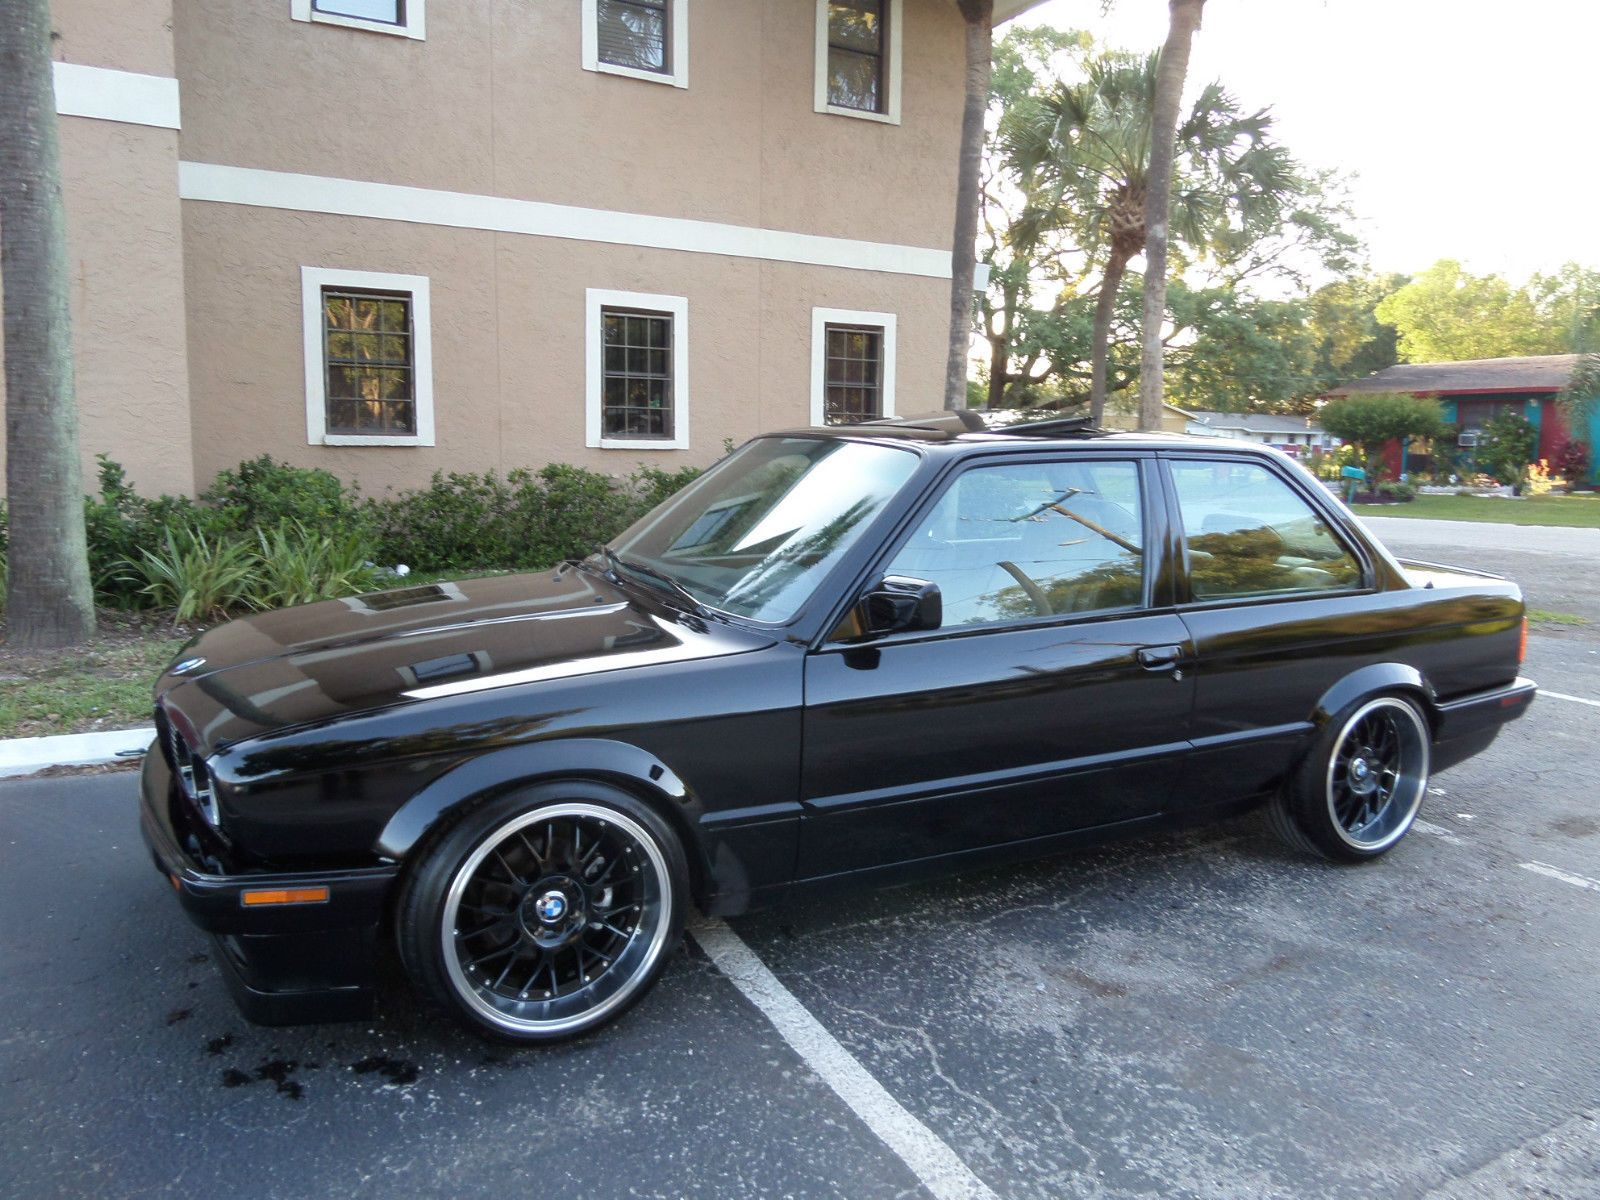 Car Brand Auctioned Bmw 3 Series 1989 Car Model Bmw 325 I Coupe Auto E 30 Check More At Http Auctioncars Online Product Car Brand Auctio Bmw Bmw 325 Bmw E30